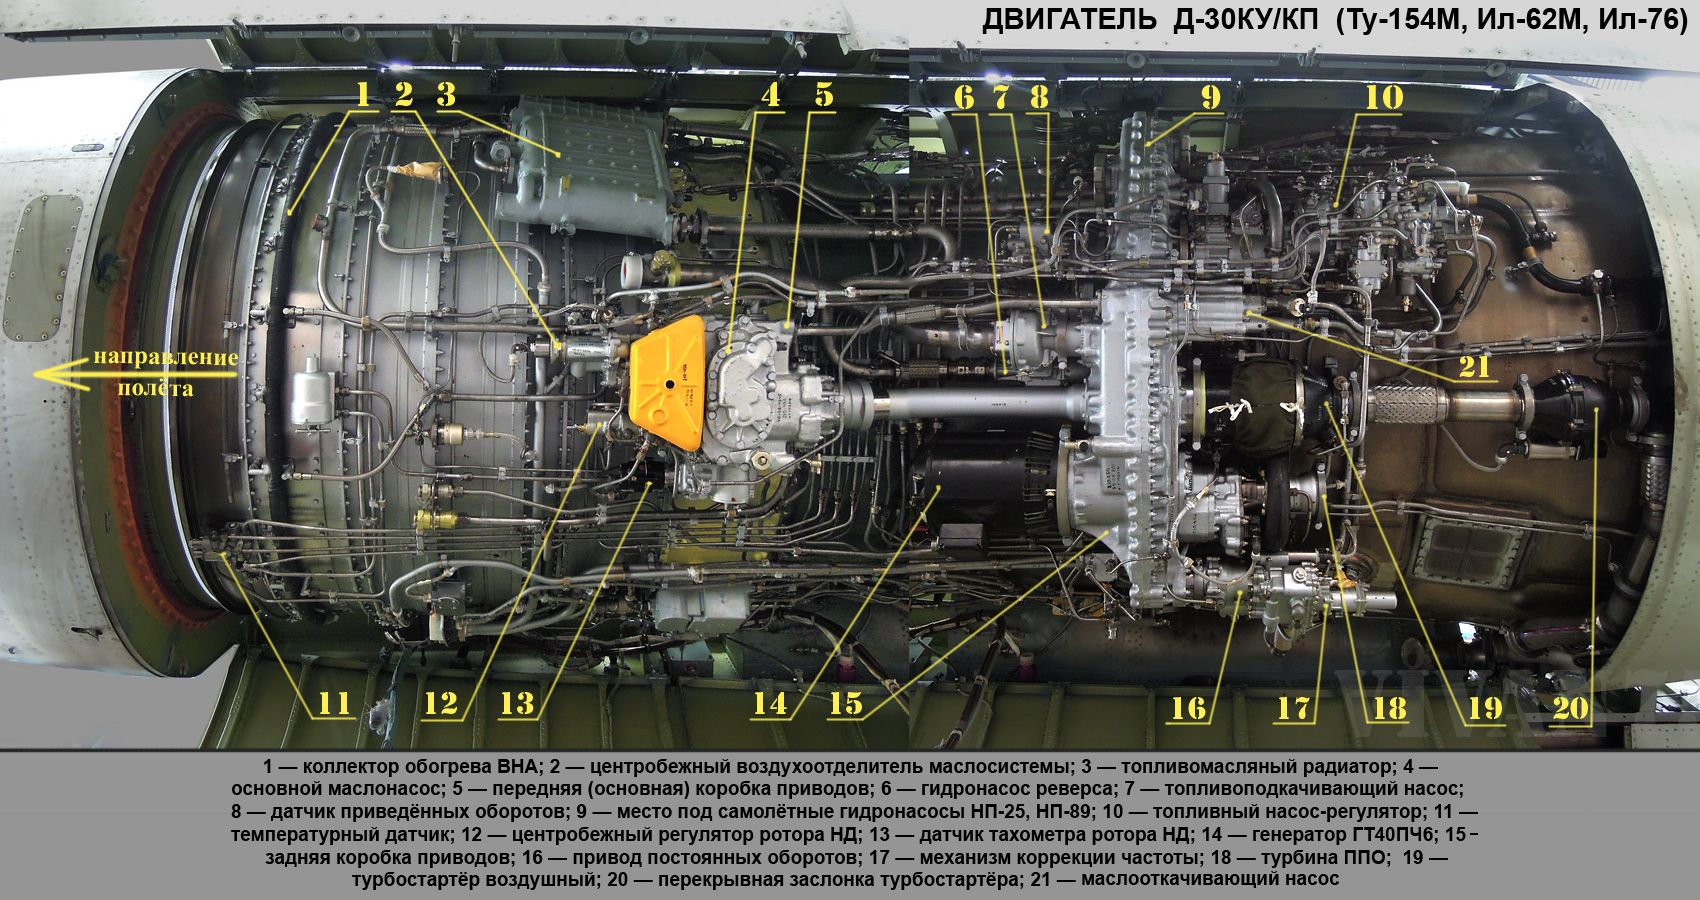 D-30KU-jet-engine | Turbine/Piston/Diesel Engines | Jet